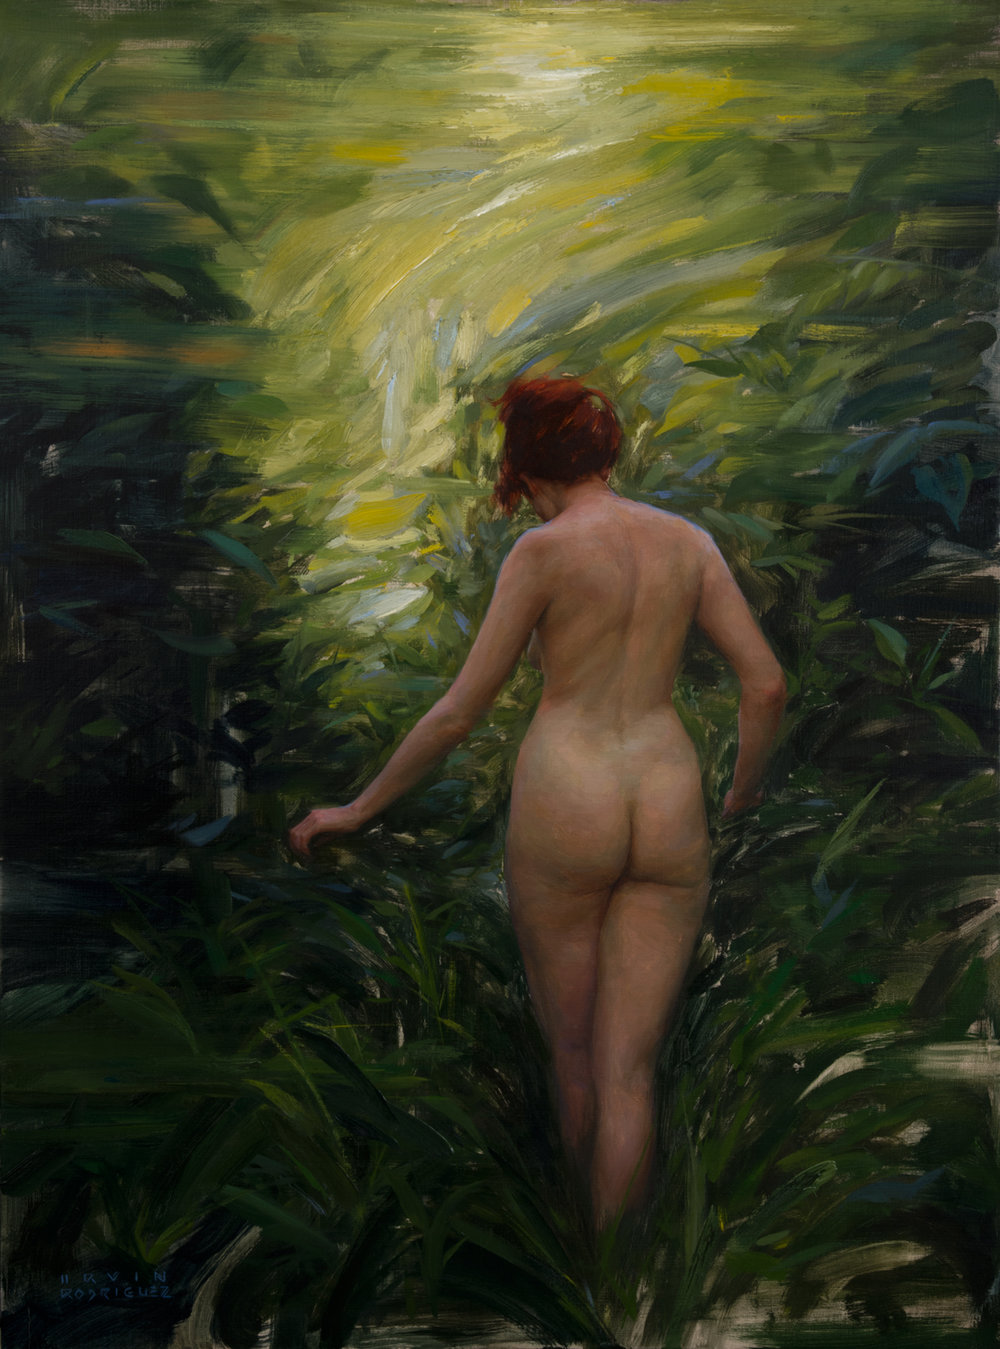 Irvin Rodriguez  |  Into the Woods  |  Oil on Linen  |  40 x 30 inches or 101 ½ x 76 cm